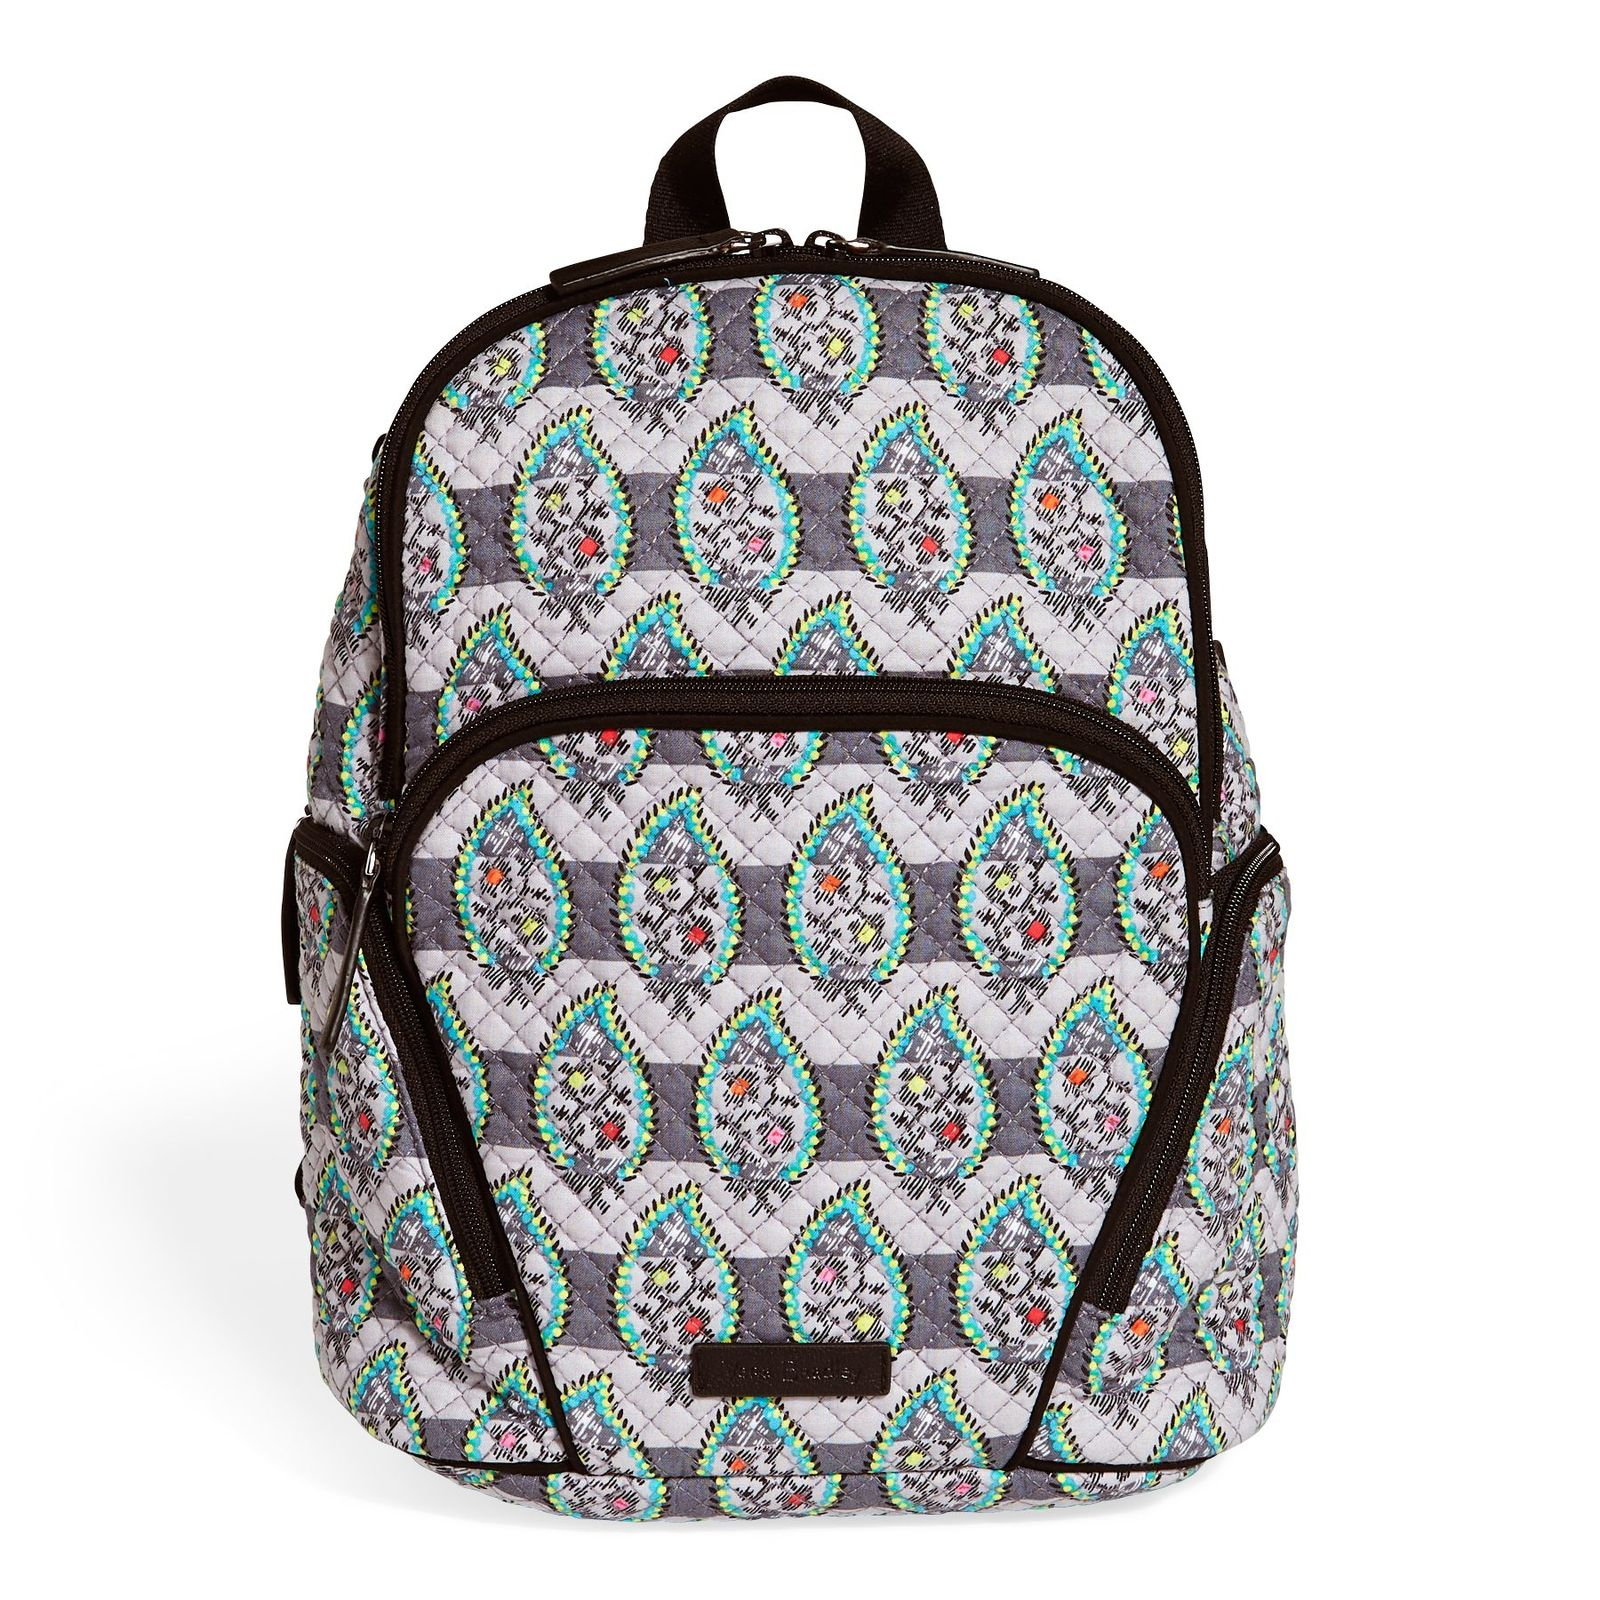 2e33f0df2 Vera Bradley Quilted Signature Cotton Hadley Backpack, Paisley ...